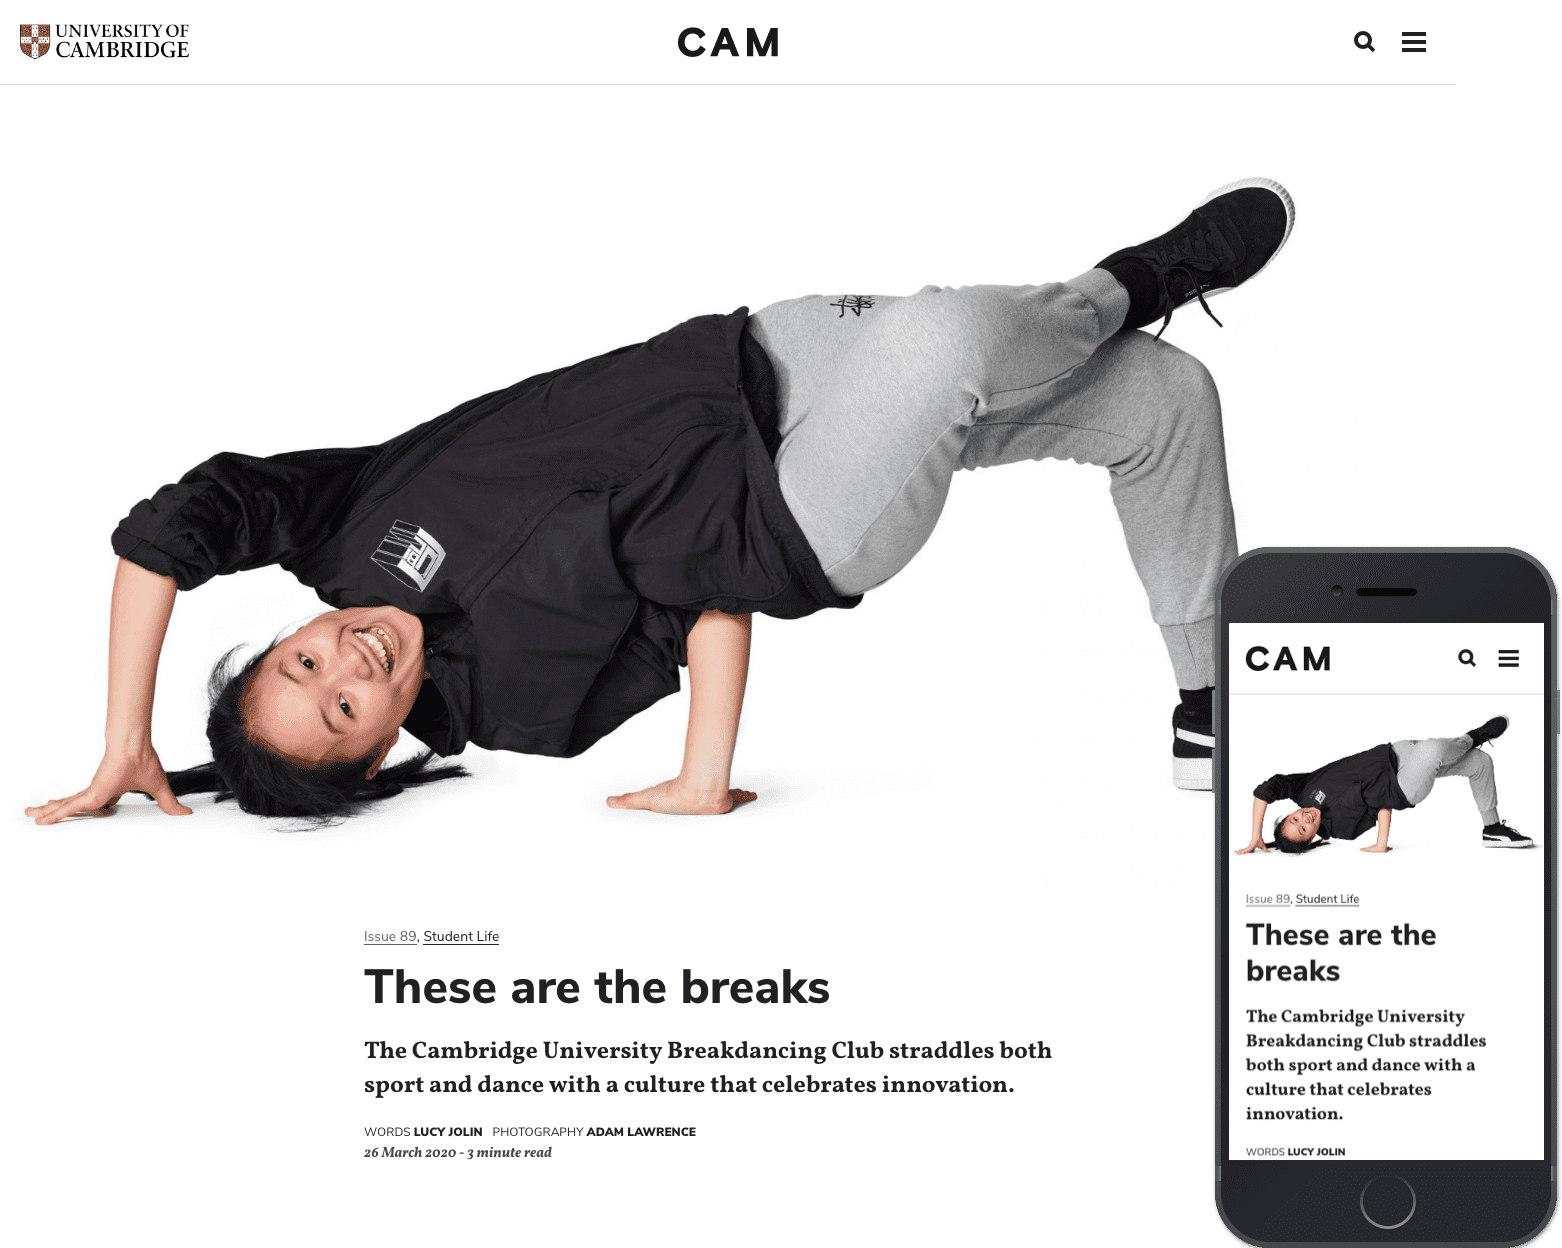 An article from CAM Digital about break dancing with a central image of a happy break dancer.